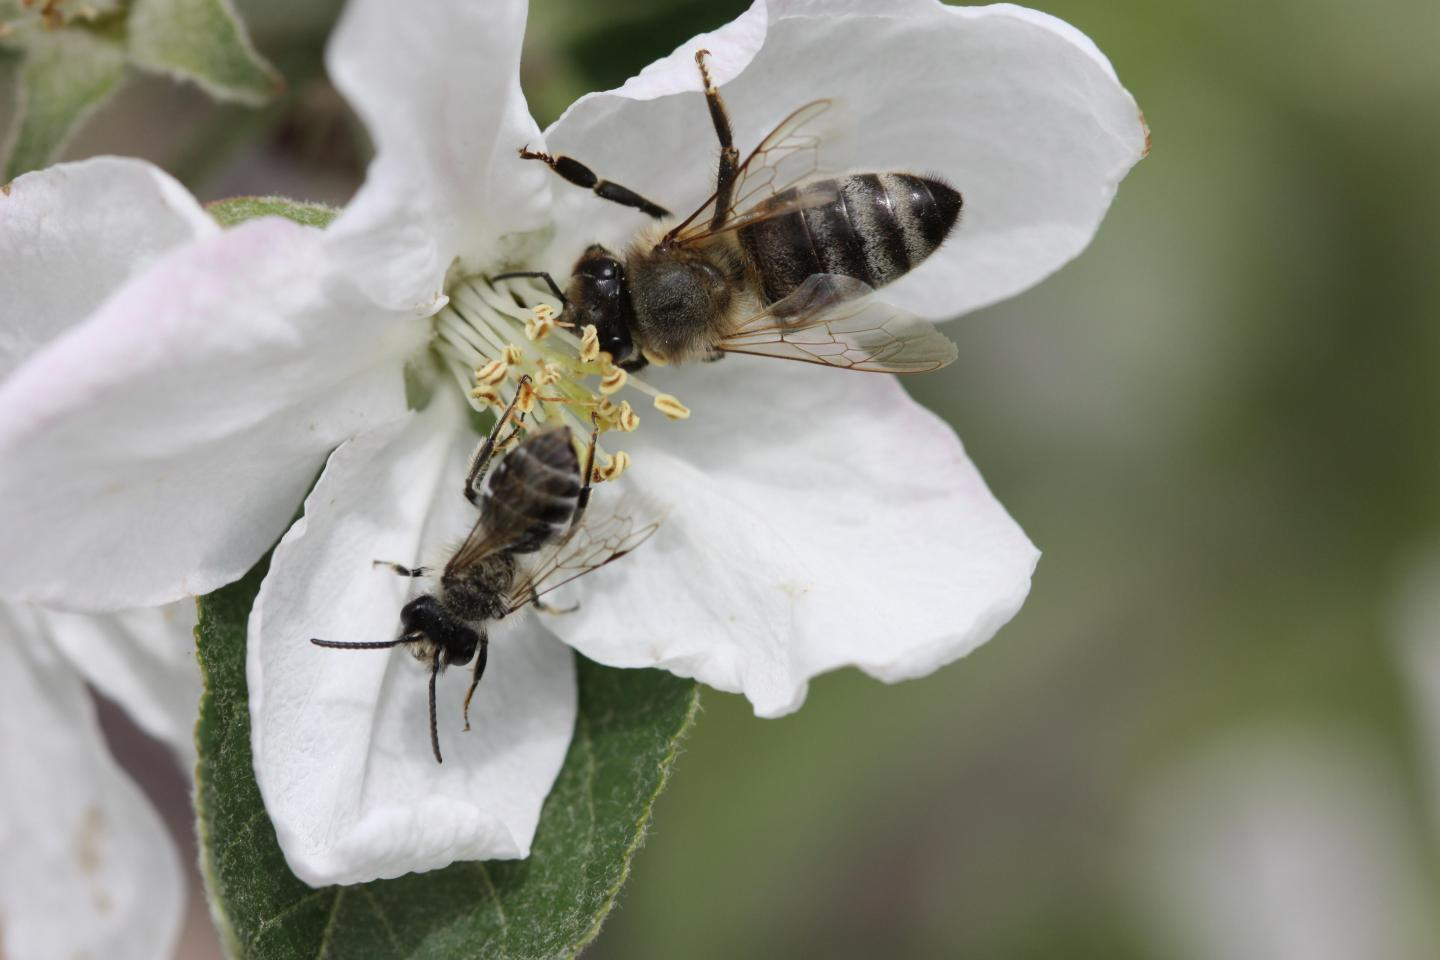 CATCH THE BUZZ – New Research Suggests That Global Trends in Farming Practices are Undermining POLLINATORS.